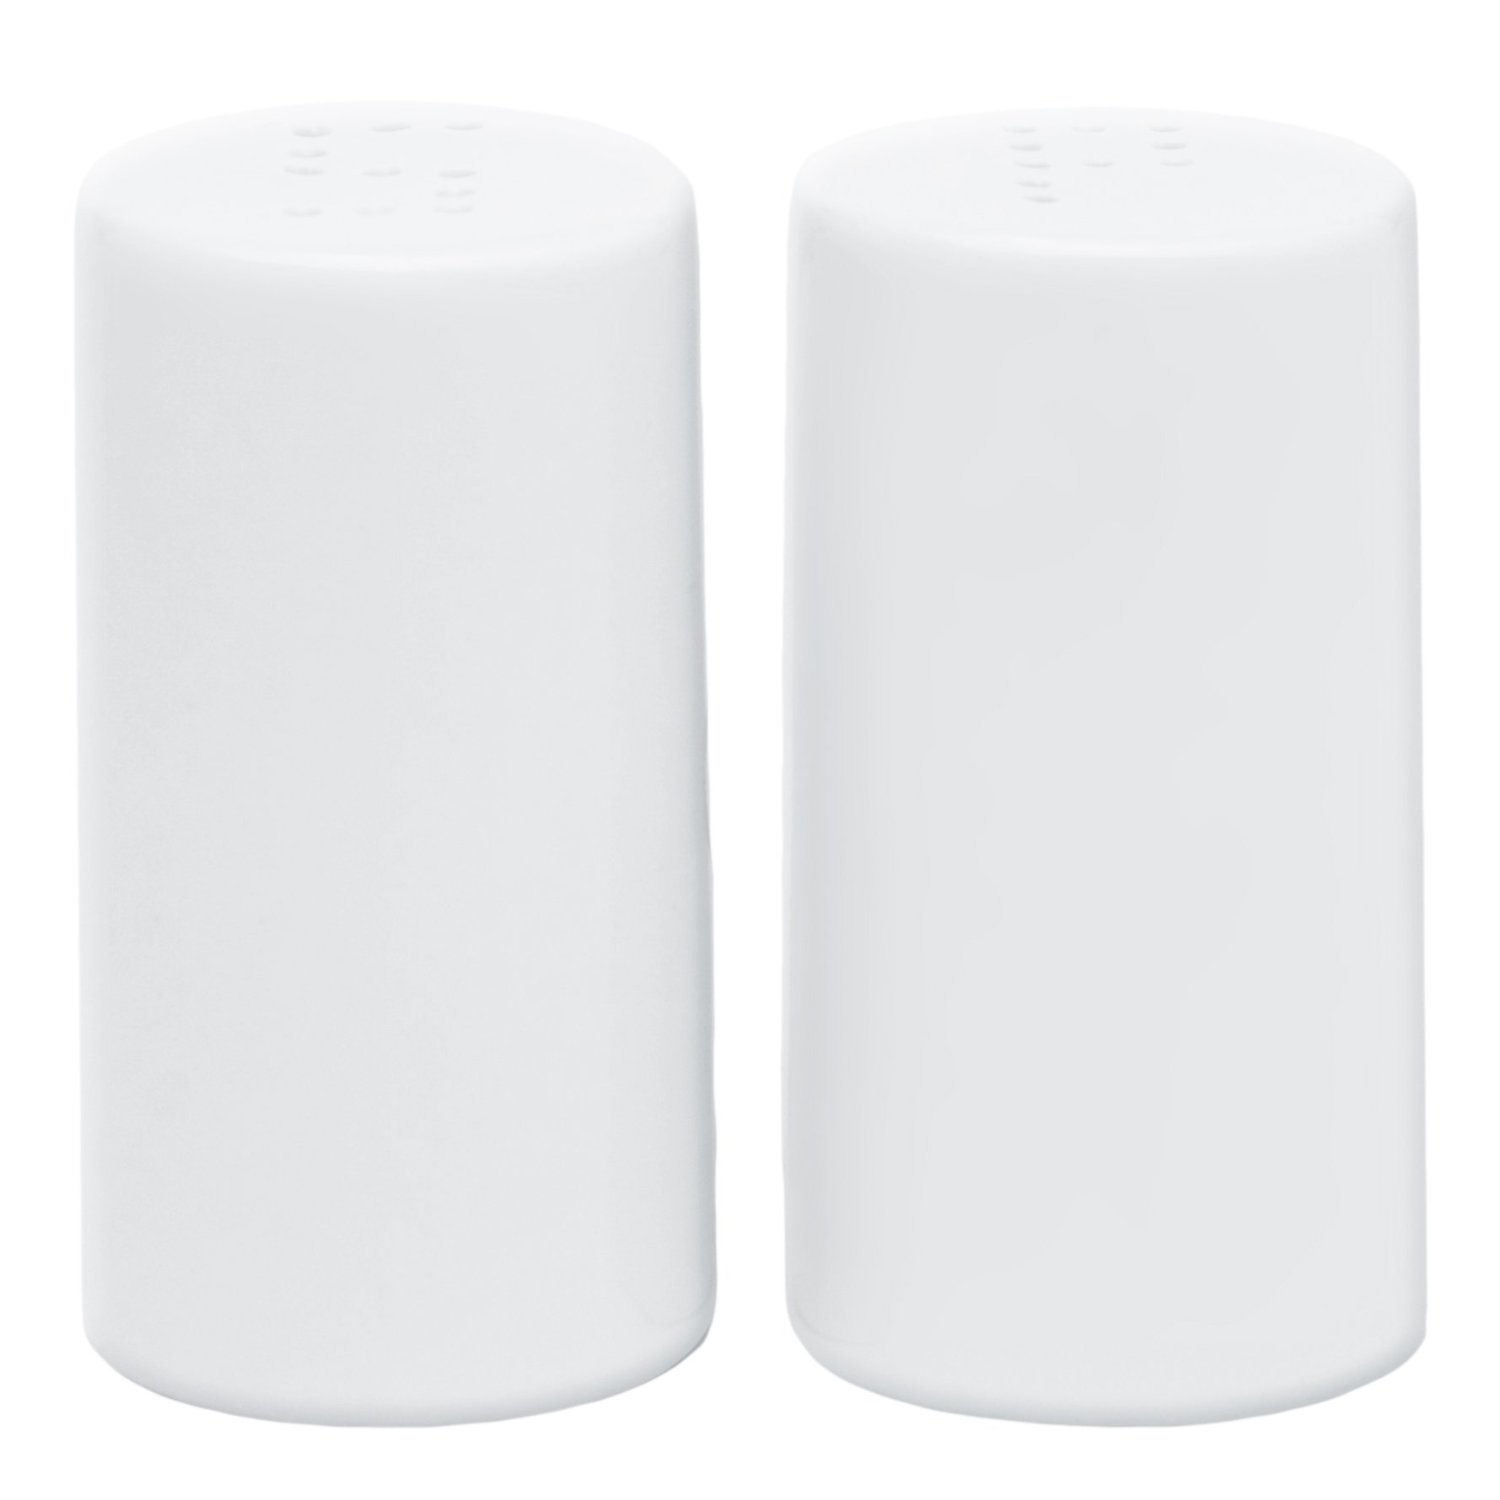 Harold Imports HIC Caf? White Porcelain Salt and Pepper Shakers by Harold Import Co.